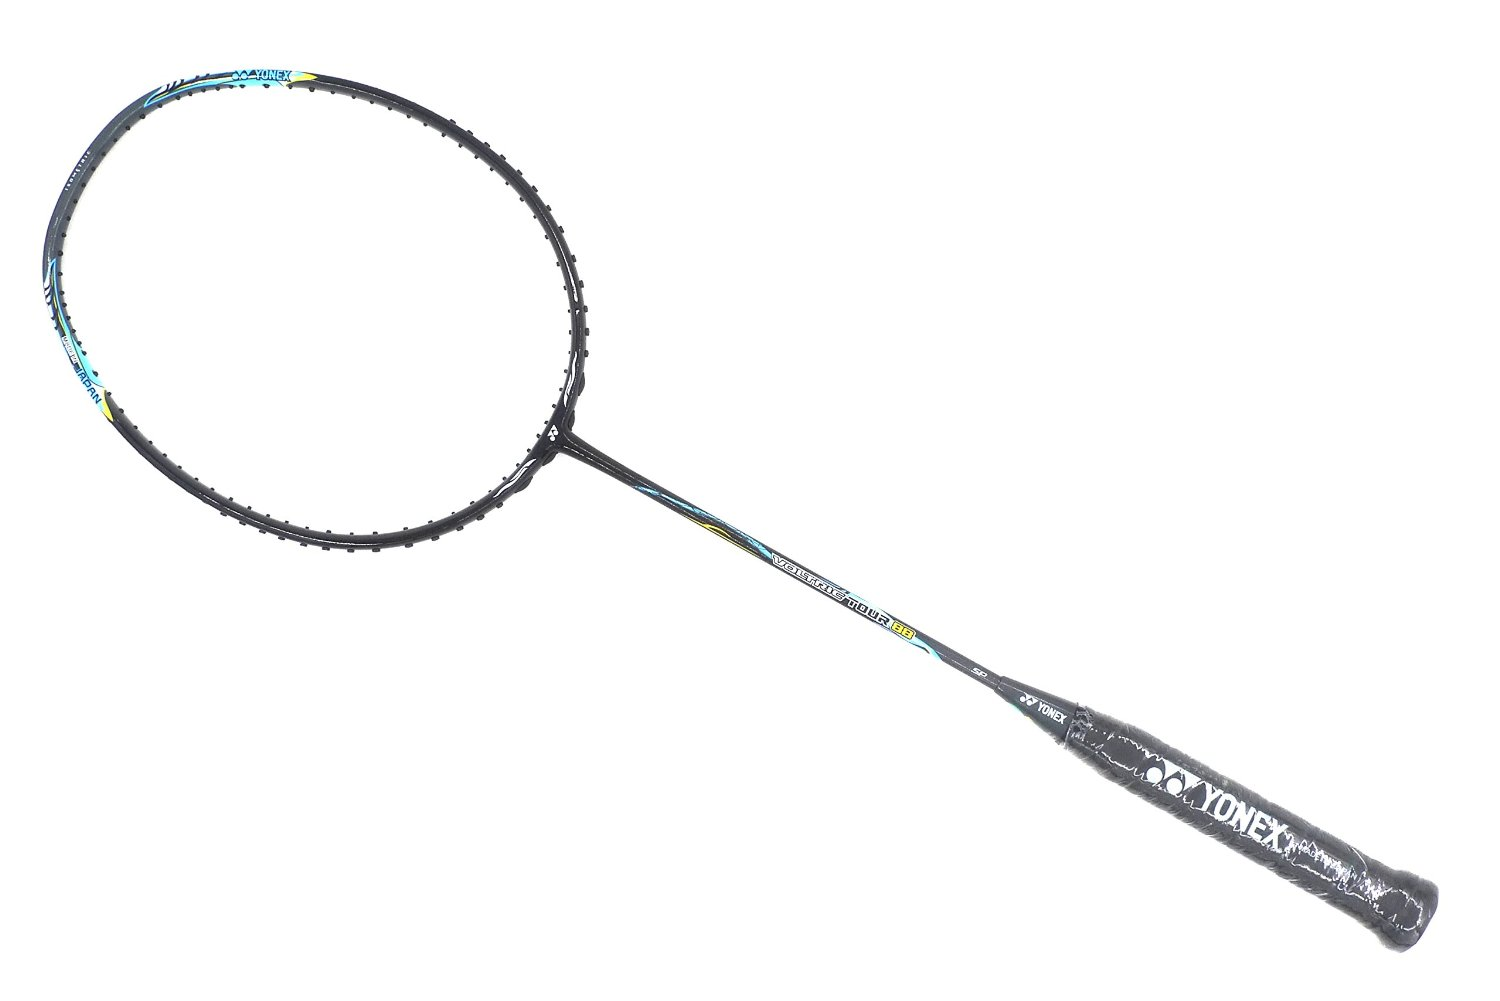 Yonex - Voltric Tour 88 Black Grey VTTR88 Badminton Racket (3U-G5)